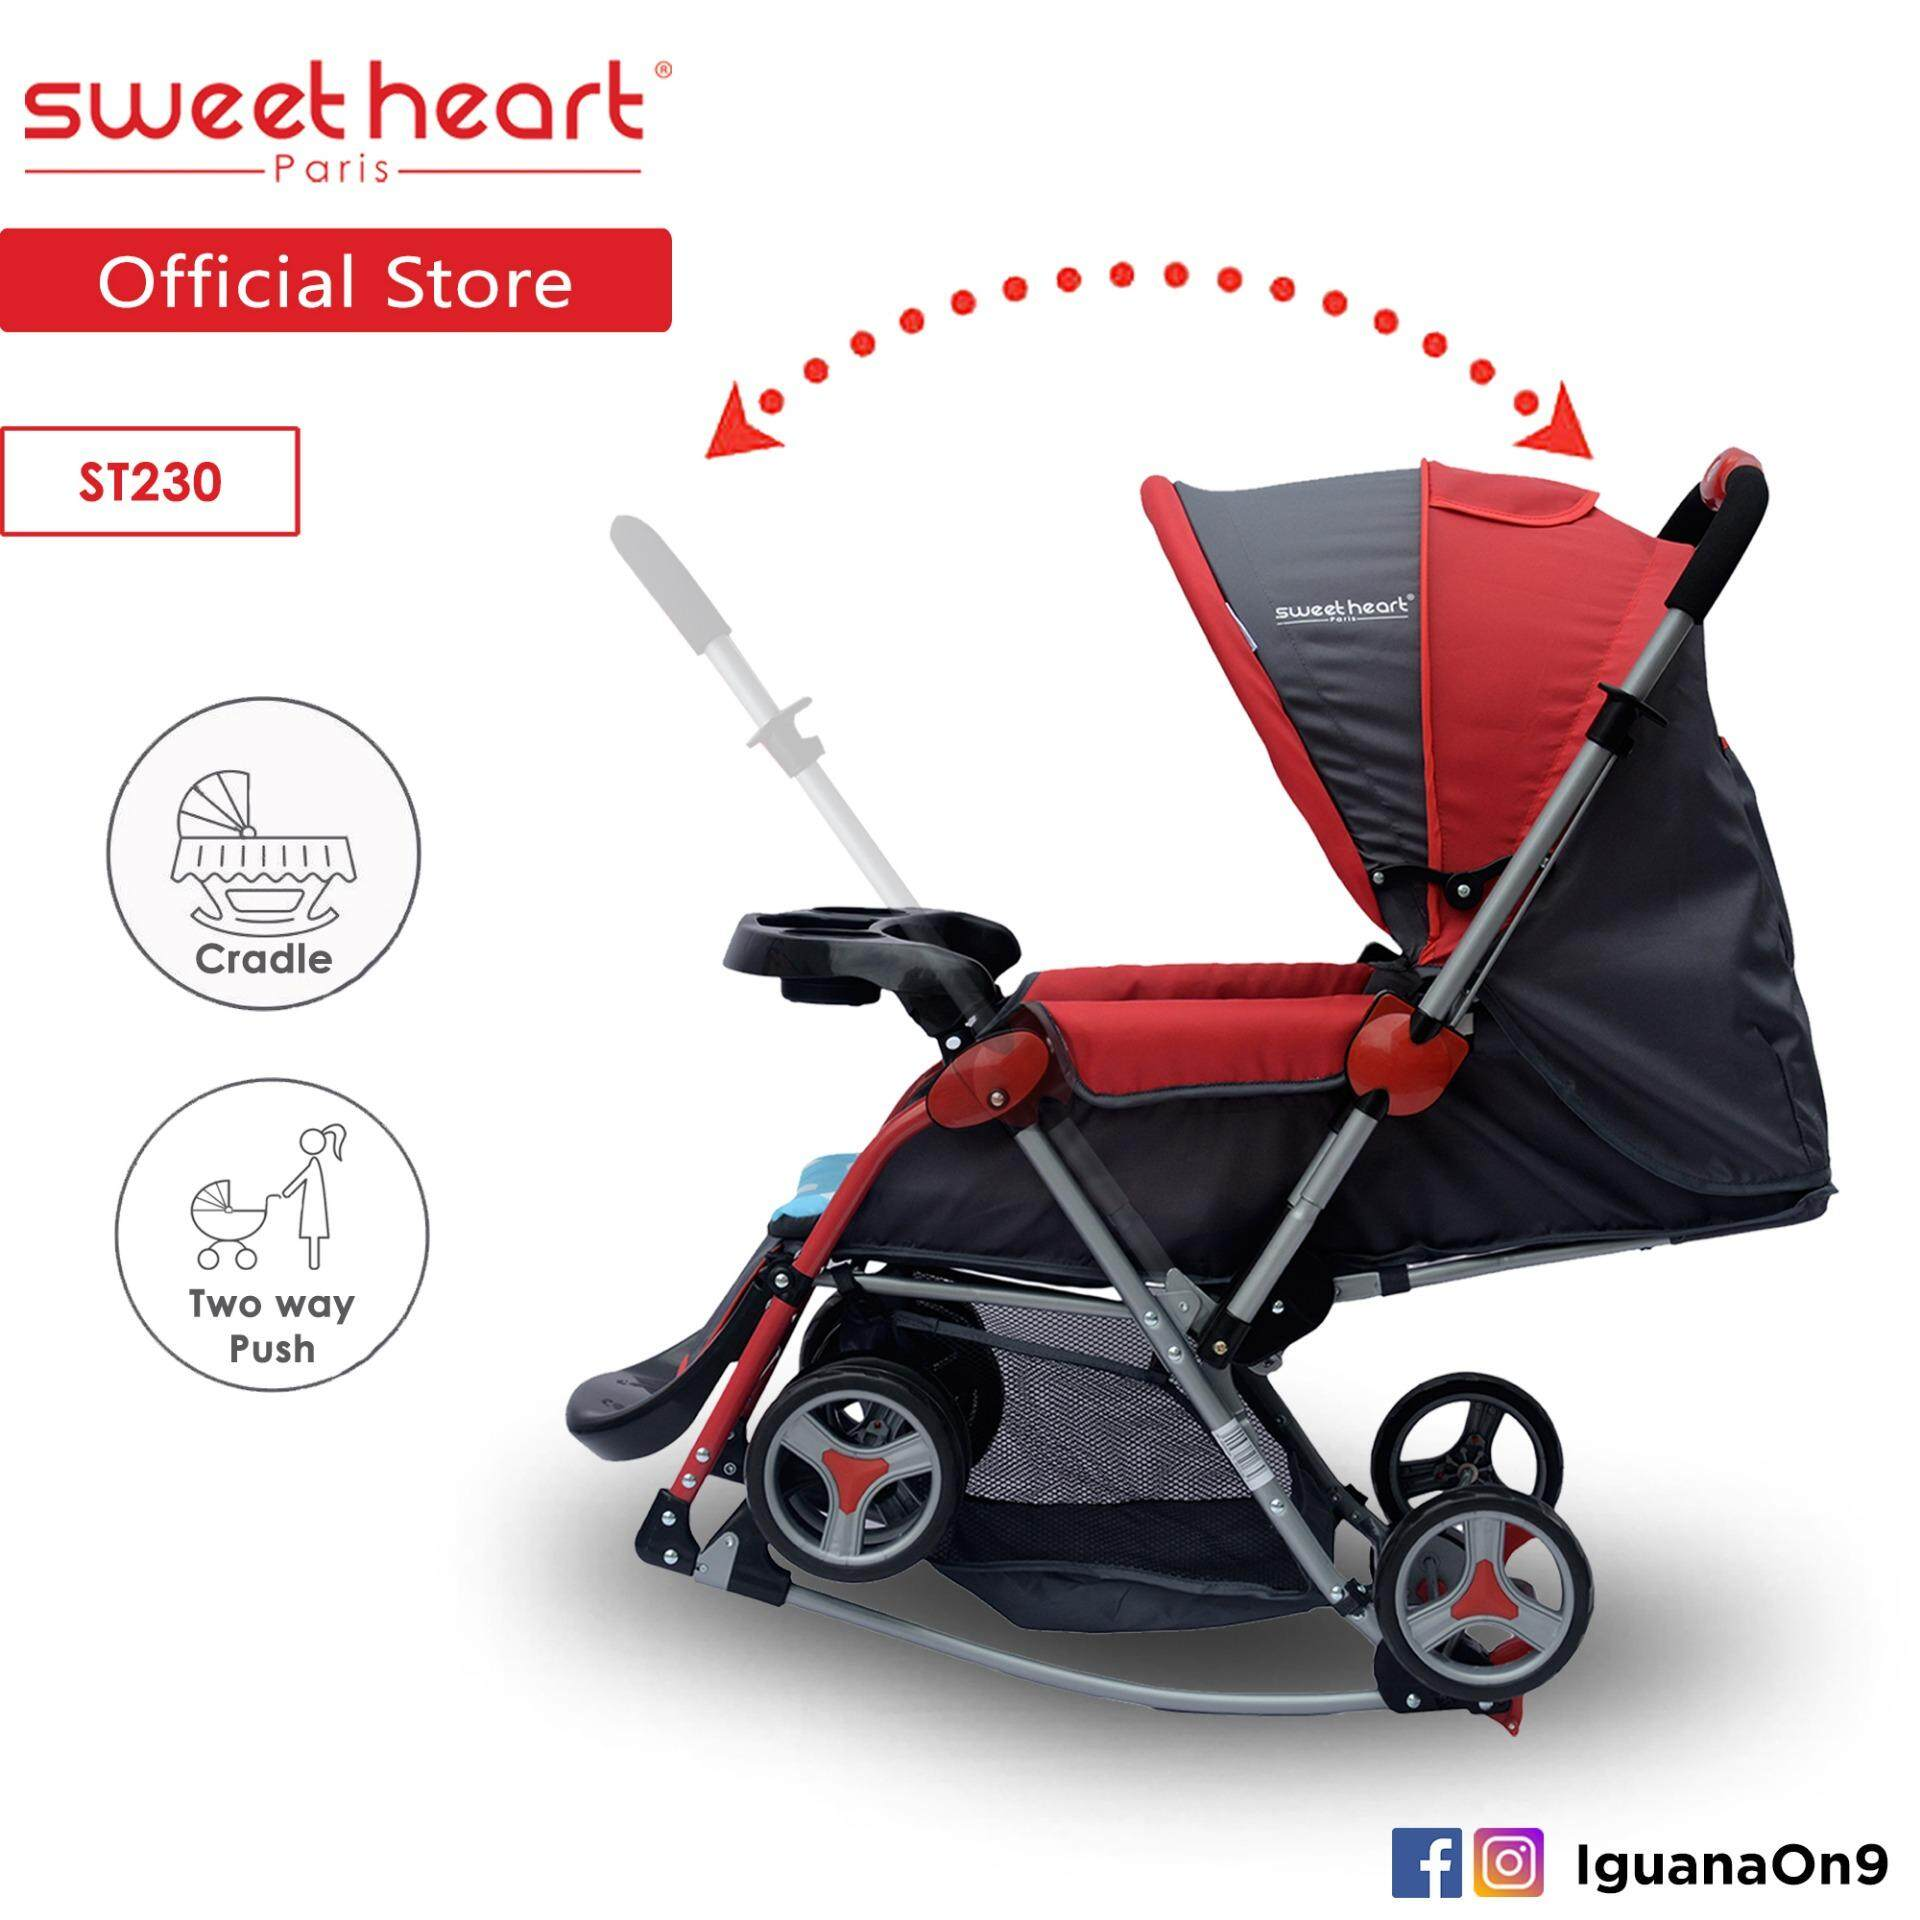 Sweet Heart Paris Aluminium 2IN1 Stroller + Rocker Cradle ST230 (Red) Bundle with Mosquito Net & Reversible Handlebar